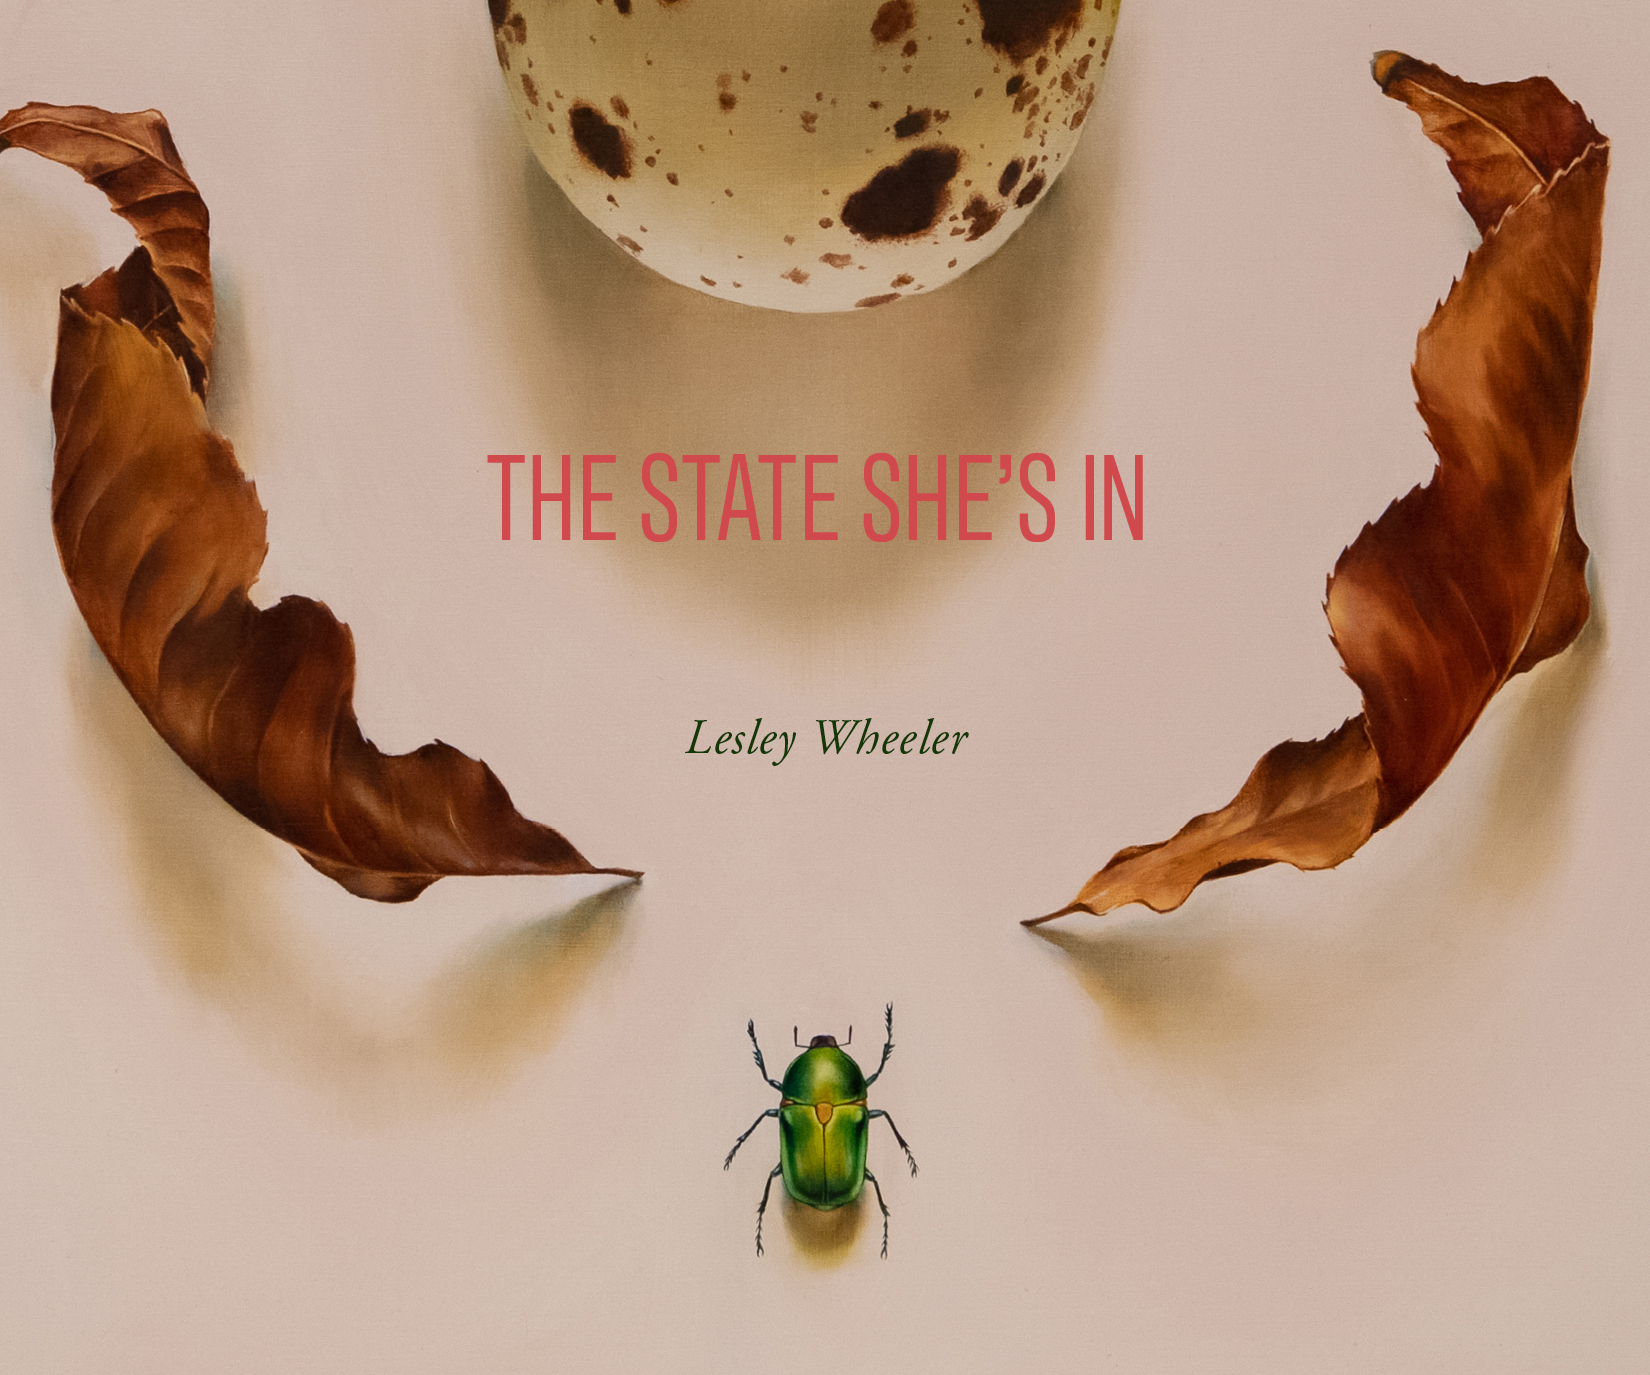 THE STATE SHE'S IN by Lesley Wheeler